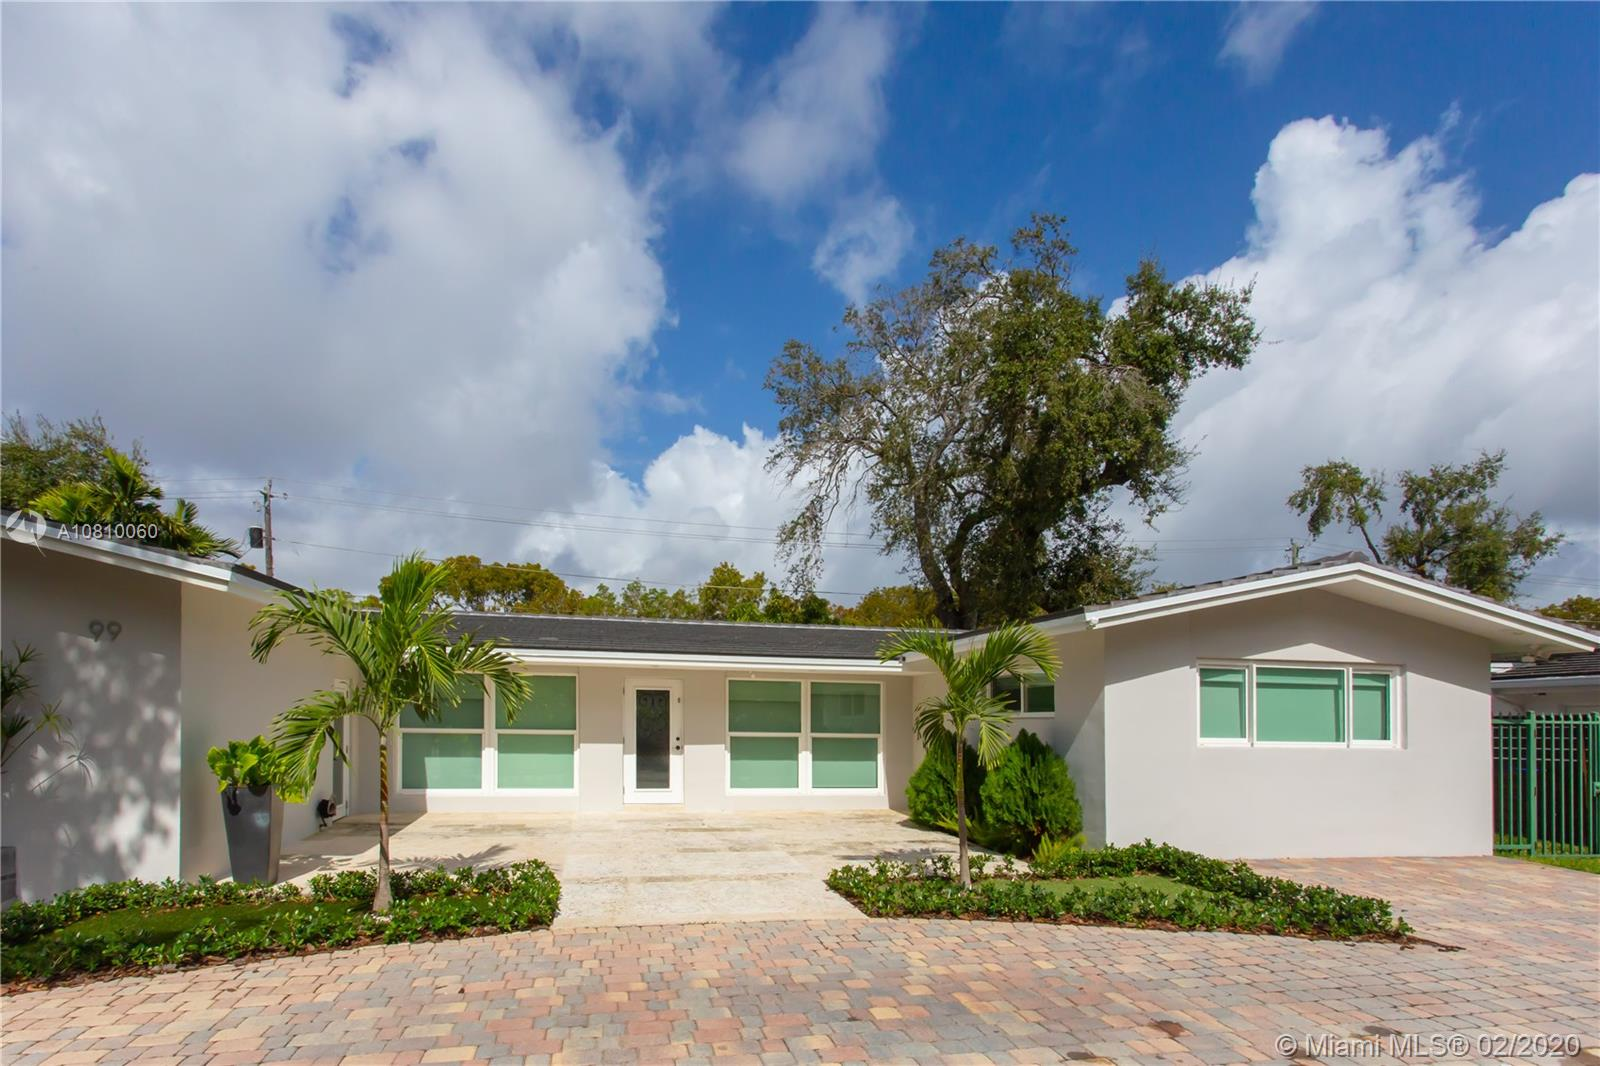 99  Shore Dr W  For Sale A10810060, FL